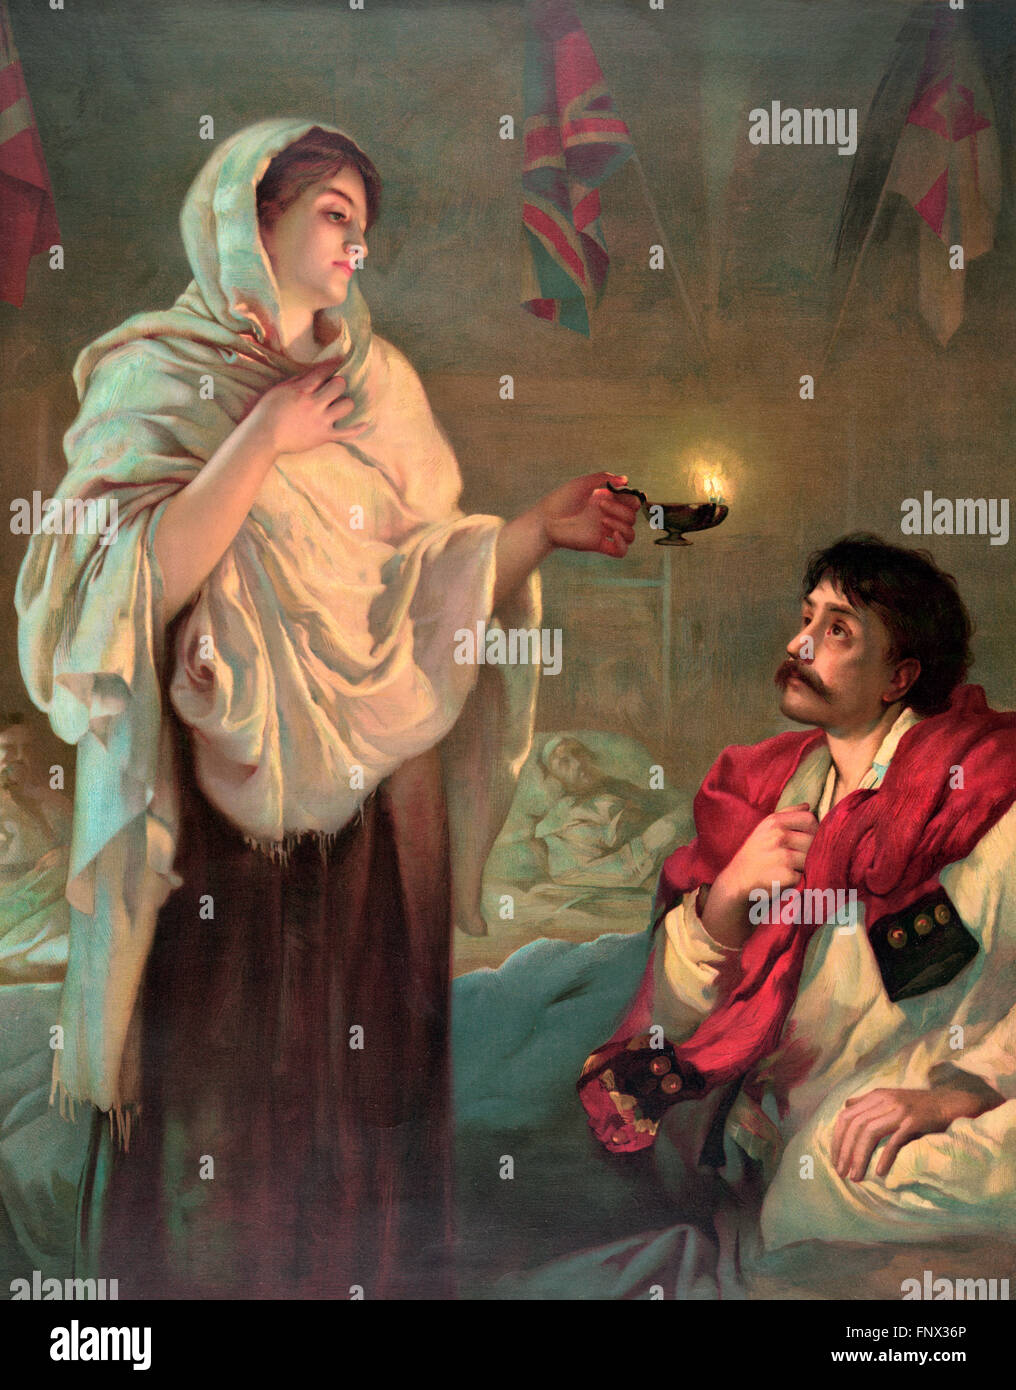 Florence Nightingale at Scutari, 1854. 'The Lady with the Lamp', an 1891 print from the painting by Henrietta - Stock Image